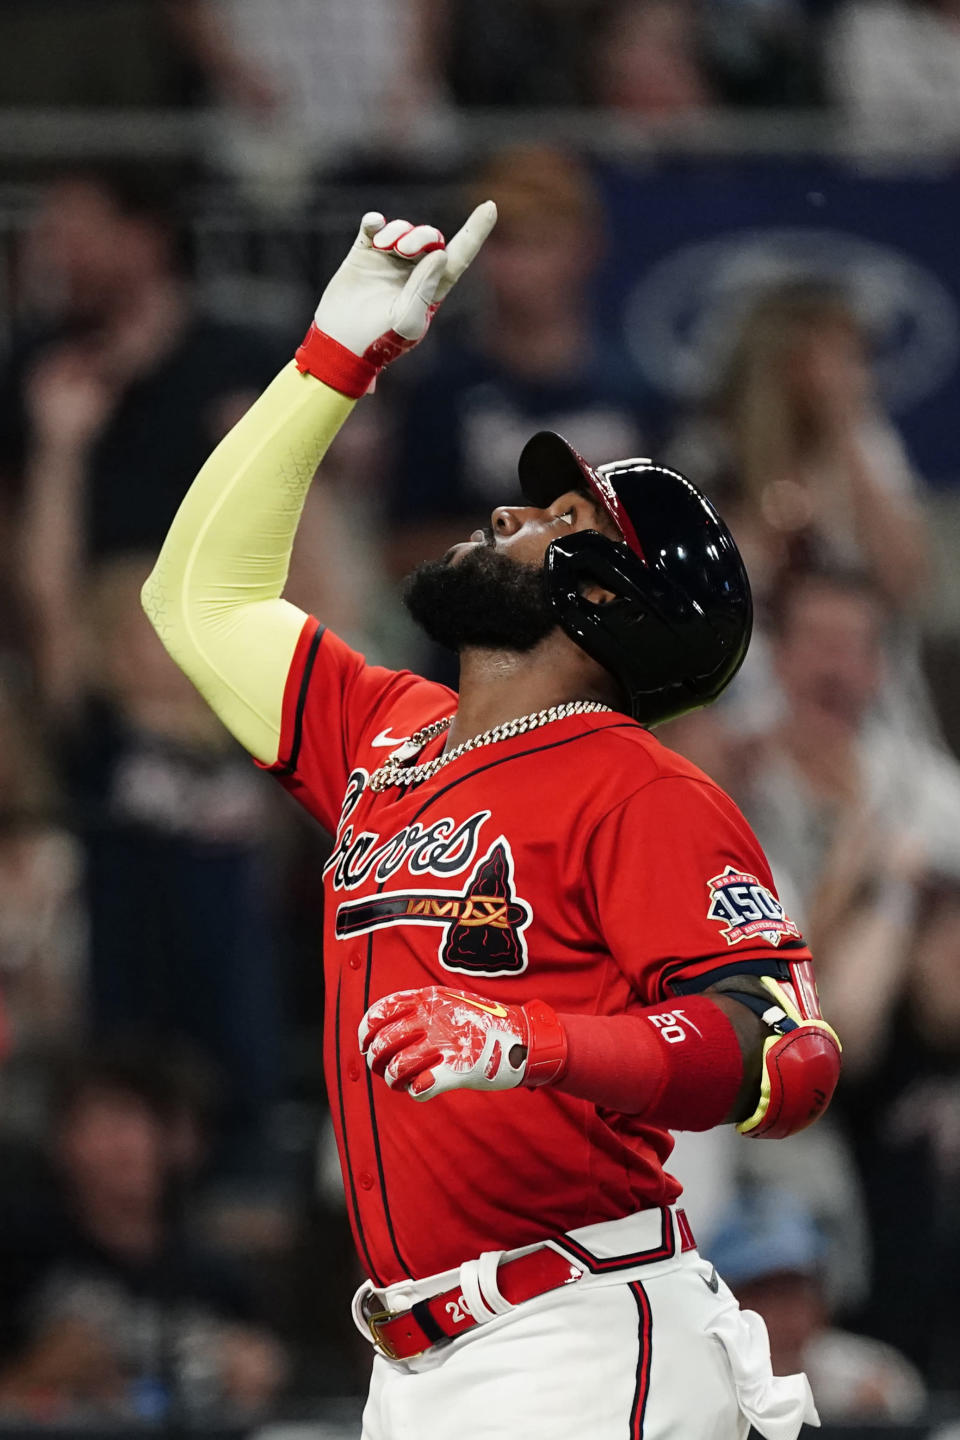 Atlanta Braves' Marcell Ozuna gestures after hitting a solo home run during the sixth inning of the team's baseball game against the Pittsburgh Pirates on Friday, May 21, 2021, in Atlanta. (AP Photo/John Bazemore)